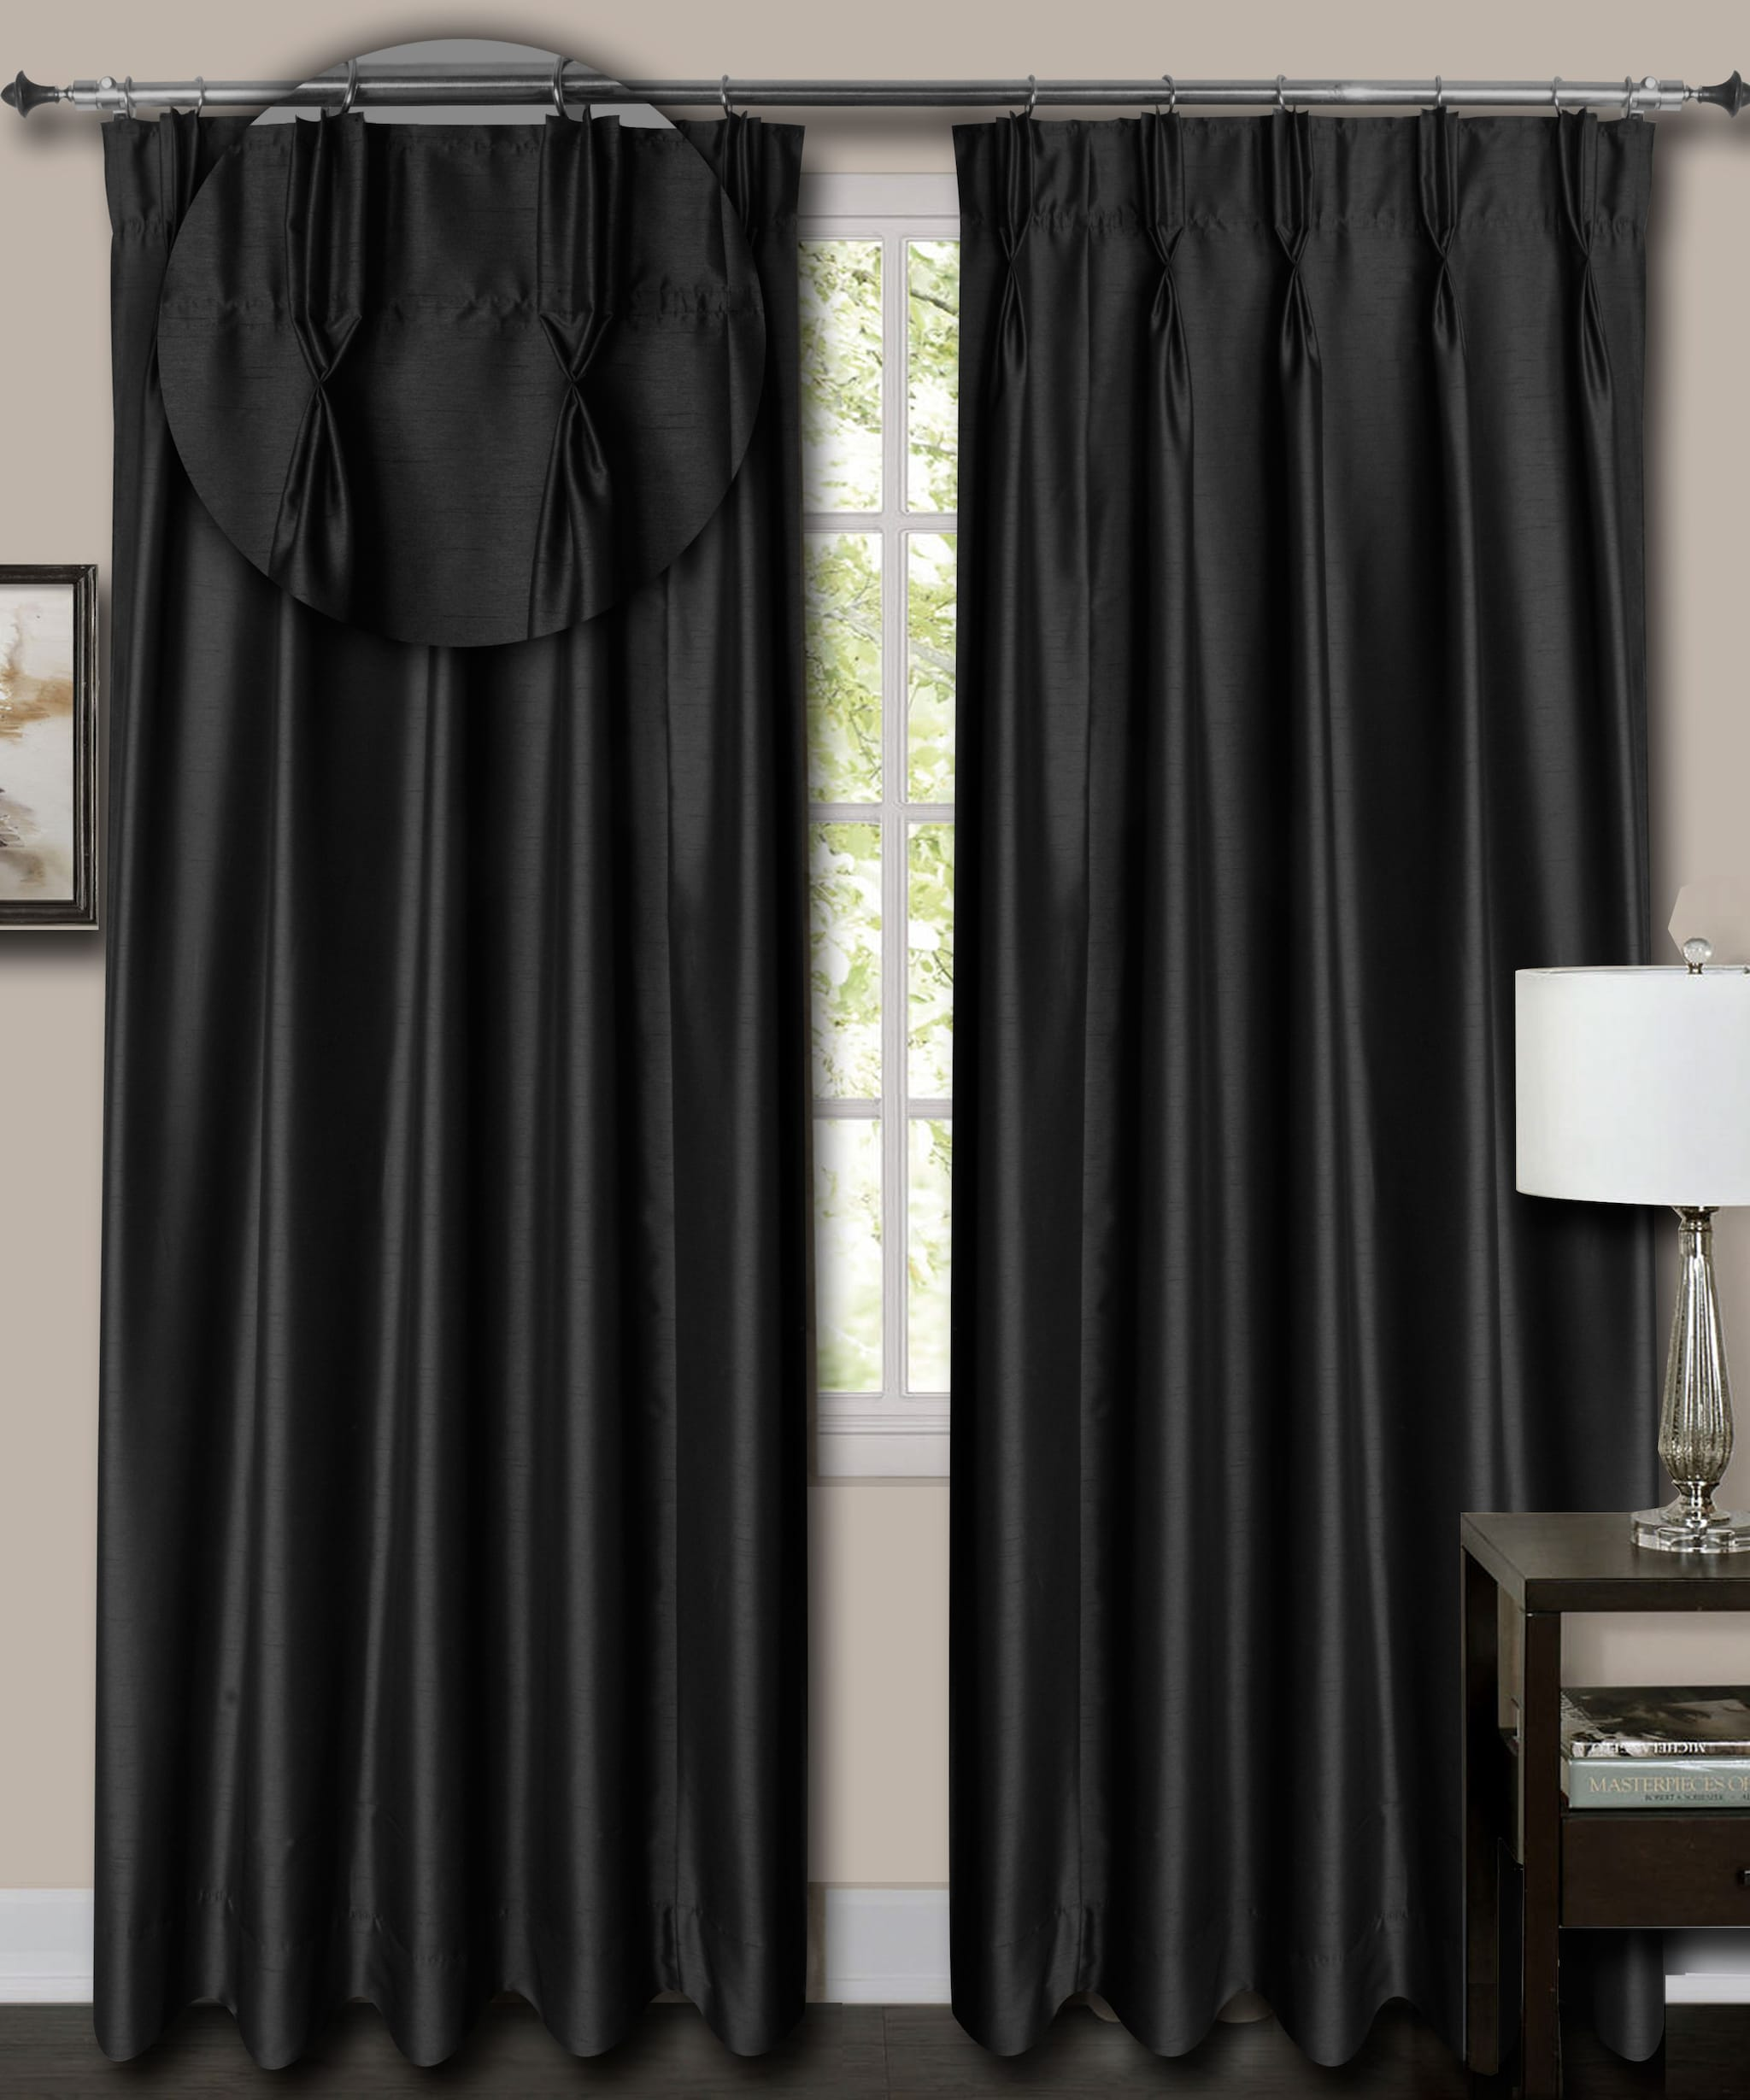 "French Pleat Top Black Faux Silk Dupioni Curtains. (65"" Wide,6 Feet Long,Blackout Lining)"